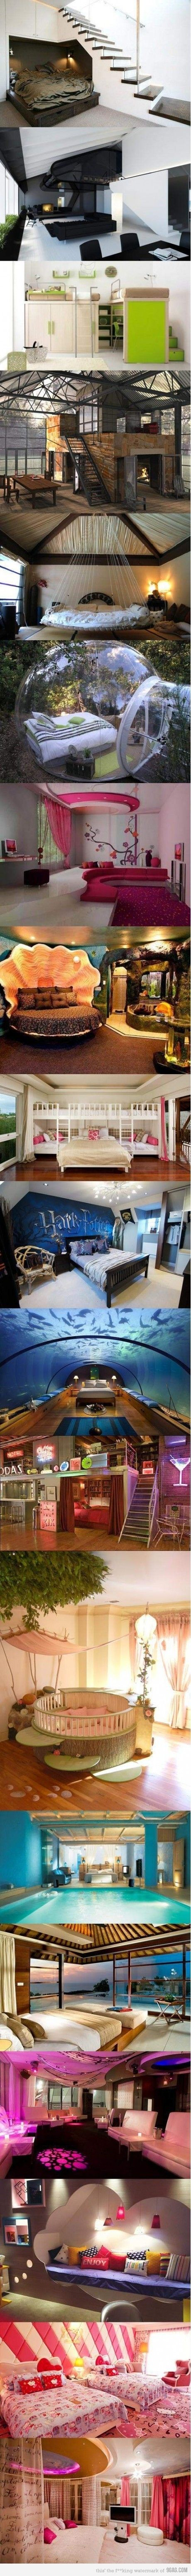 Dream houses: Awesome Room, Dream House, Dream Room, Coolest Bedroom